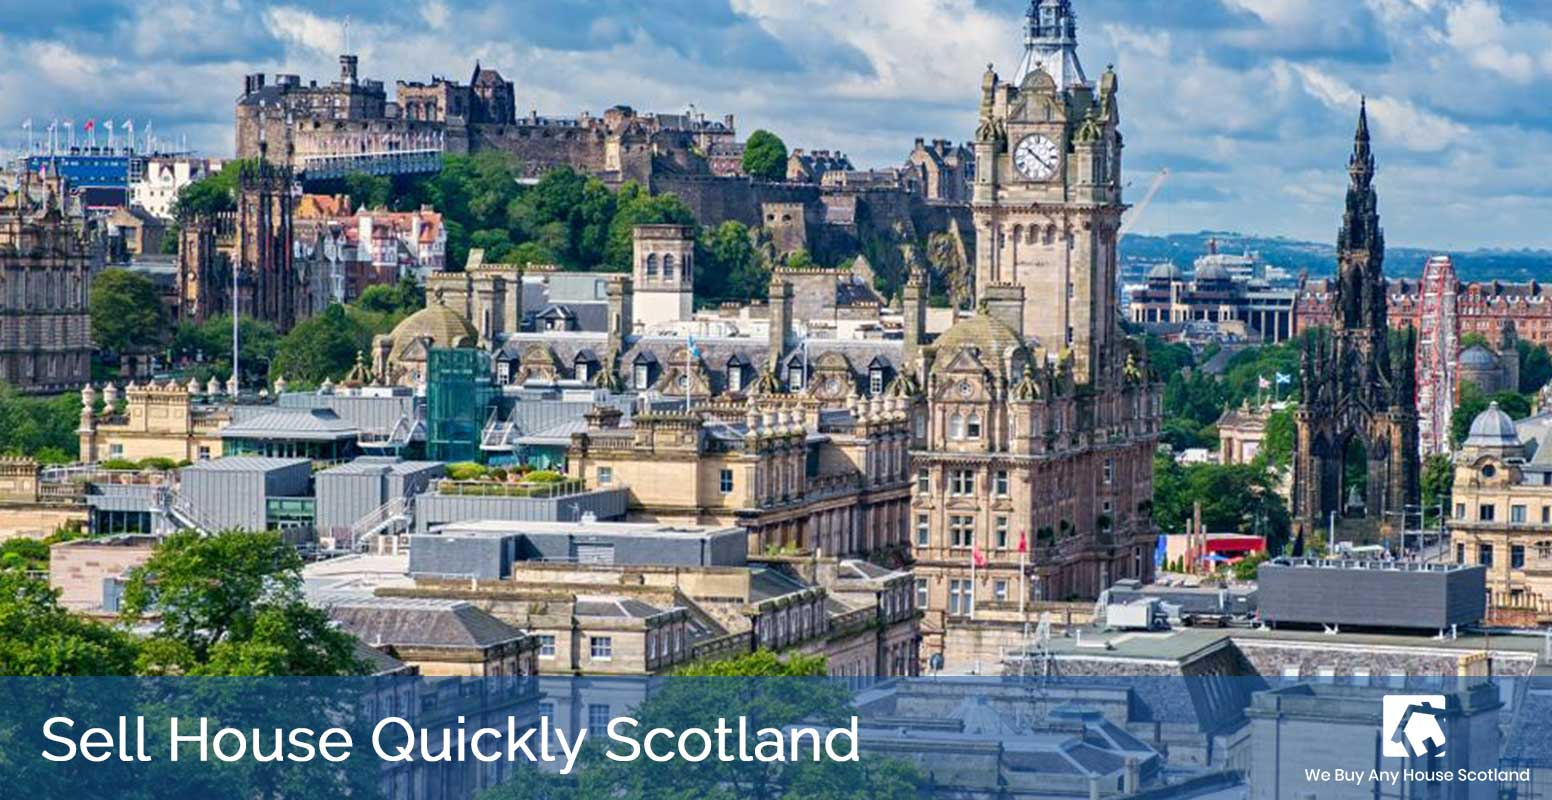 Sell House Quickly Scotland